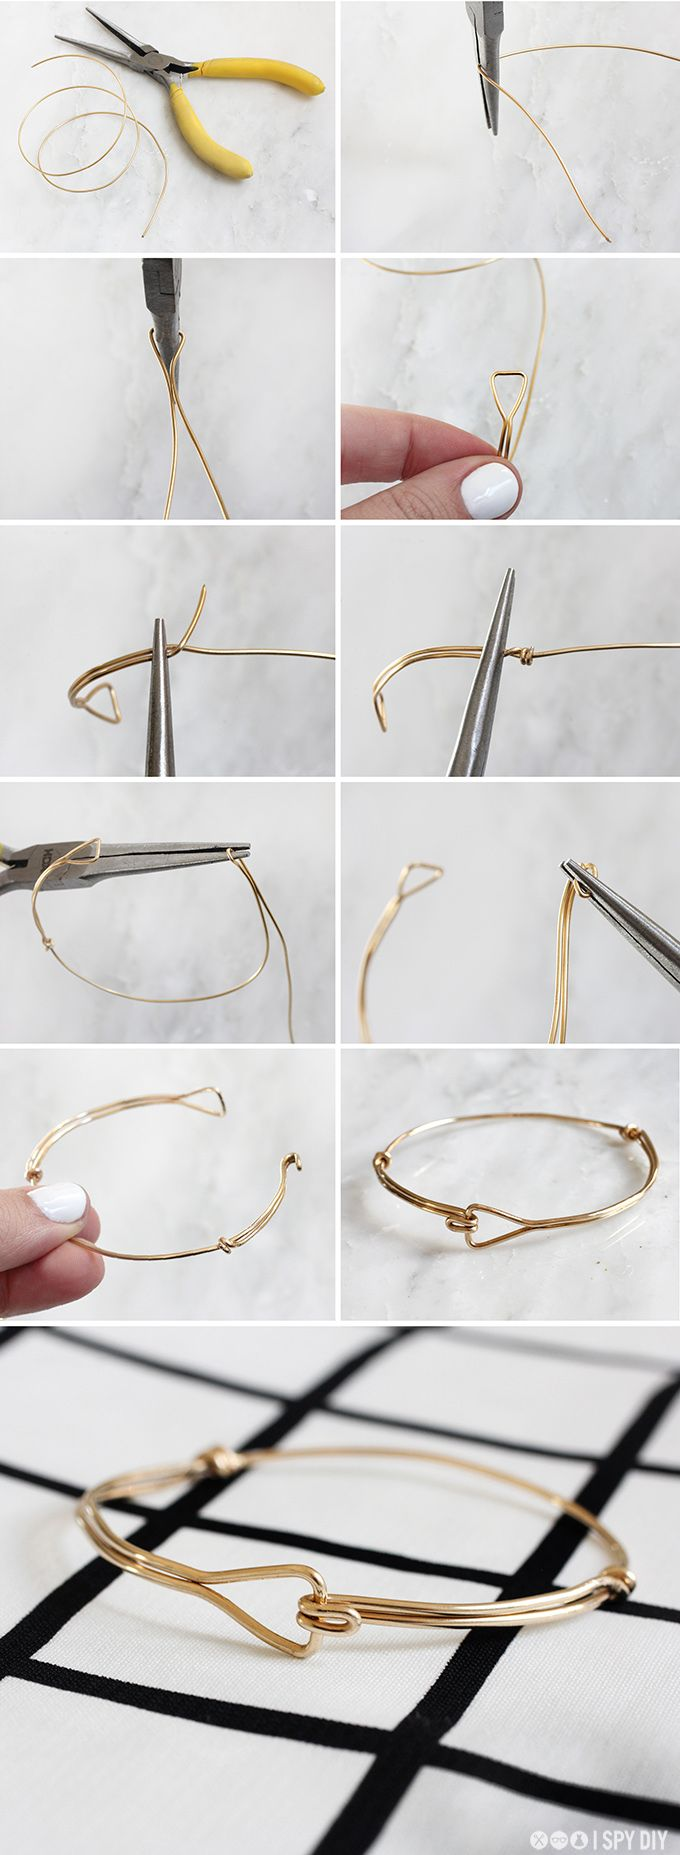 Ispydiy_trianglewirebracelet_steps | Diy | Pinterest | Schmuck ...